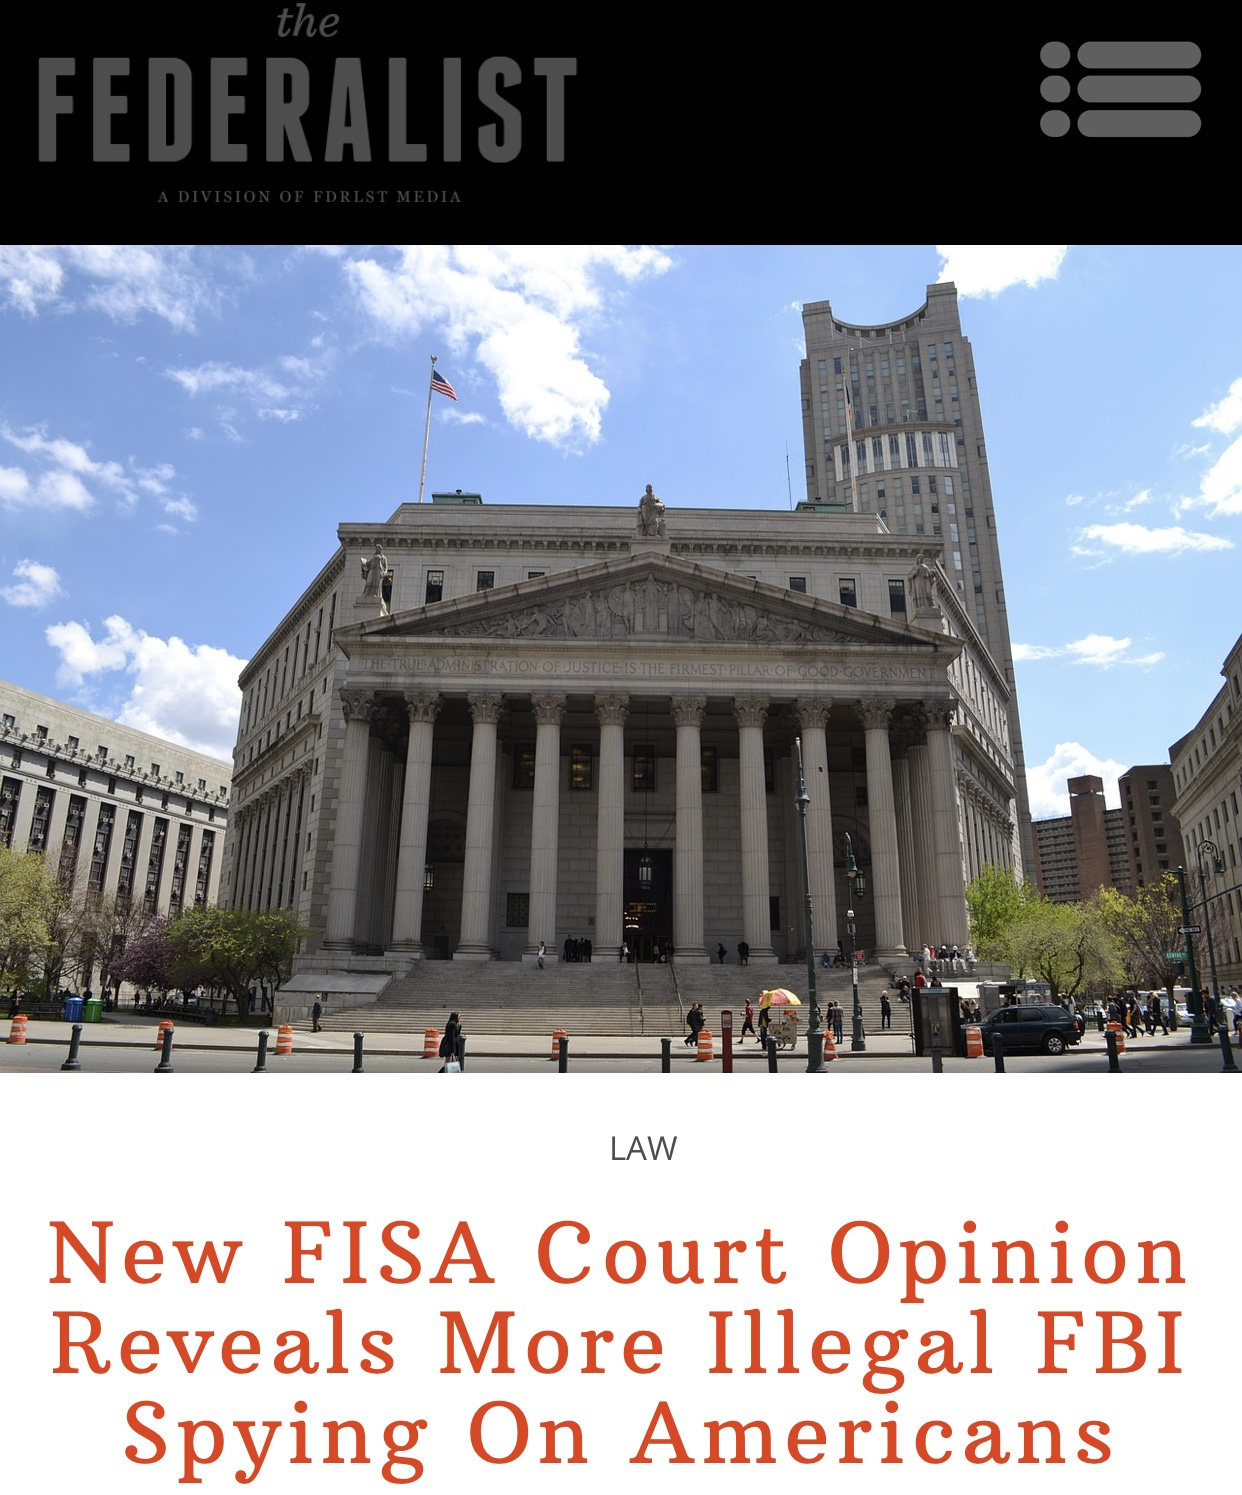 Breaking News New FISA Court Opinion Reveals More Illegal FBI Spying On Americans